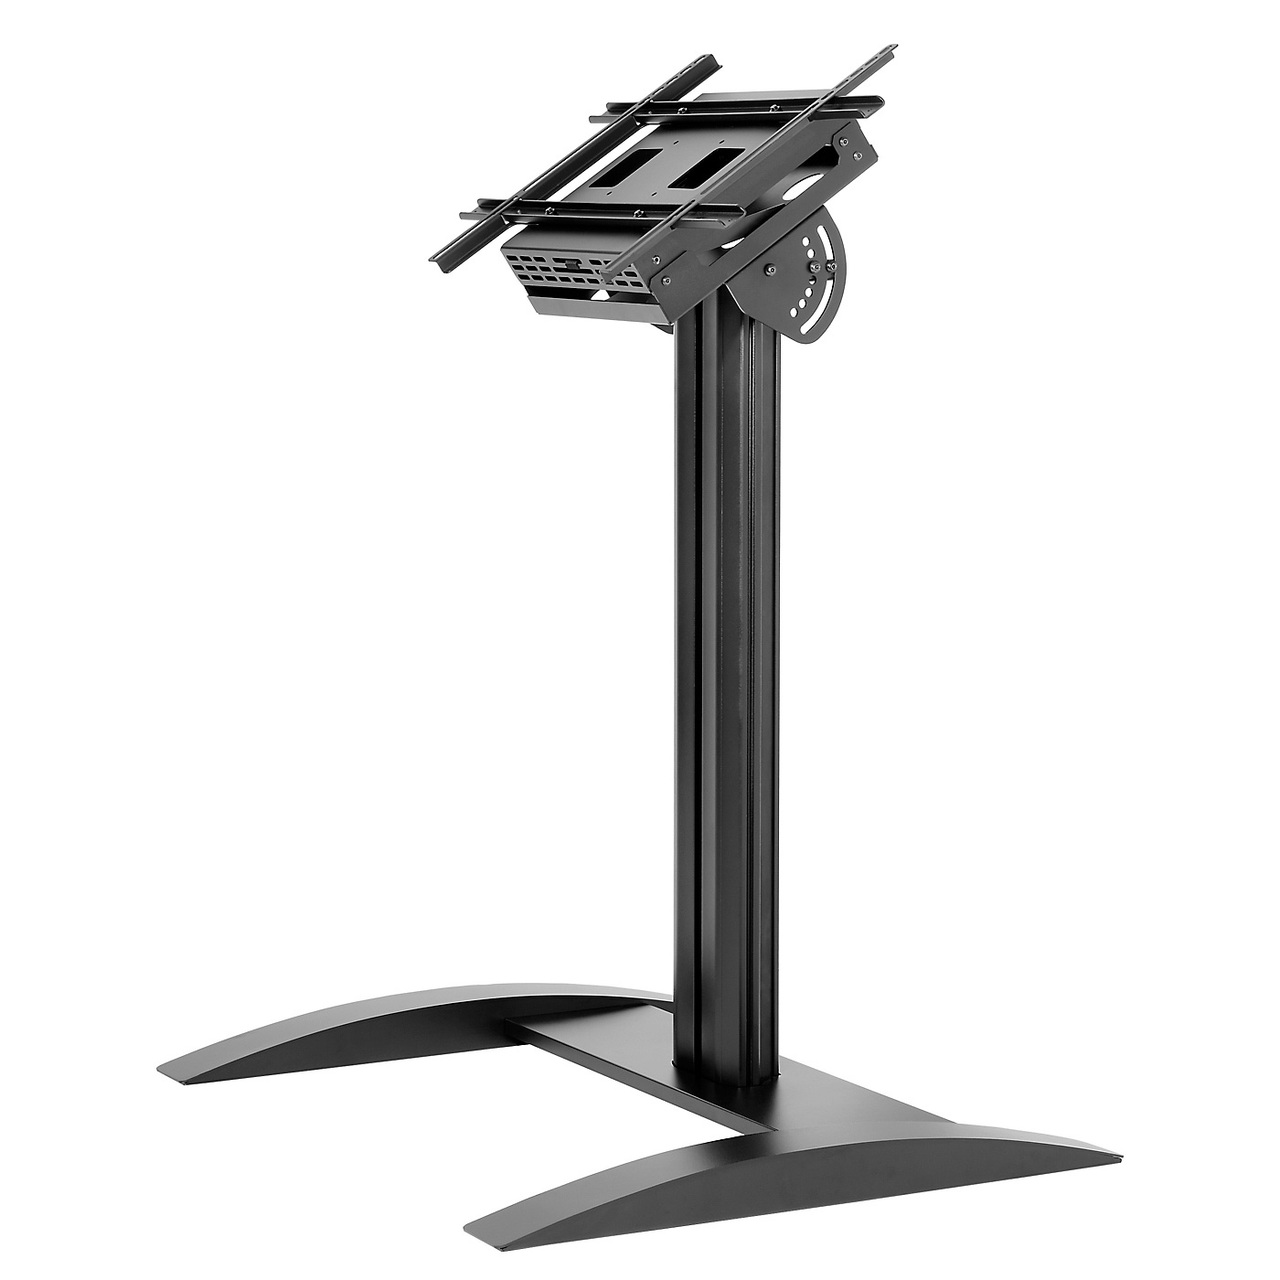 Peerless SS575K Universal Kiosk Stand for 32 Inch to 75 Inch displays